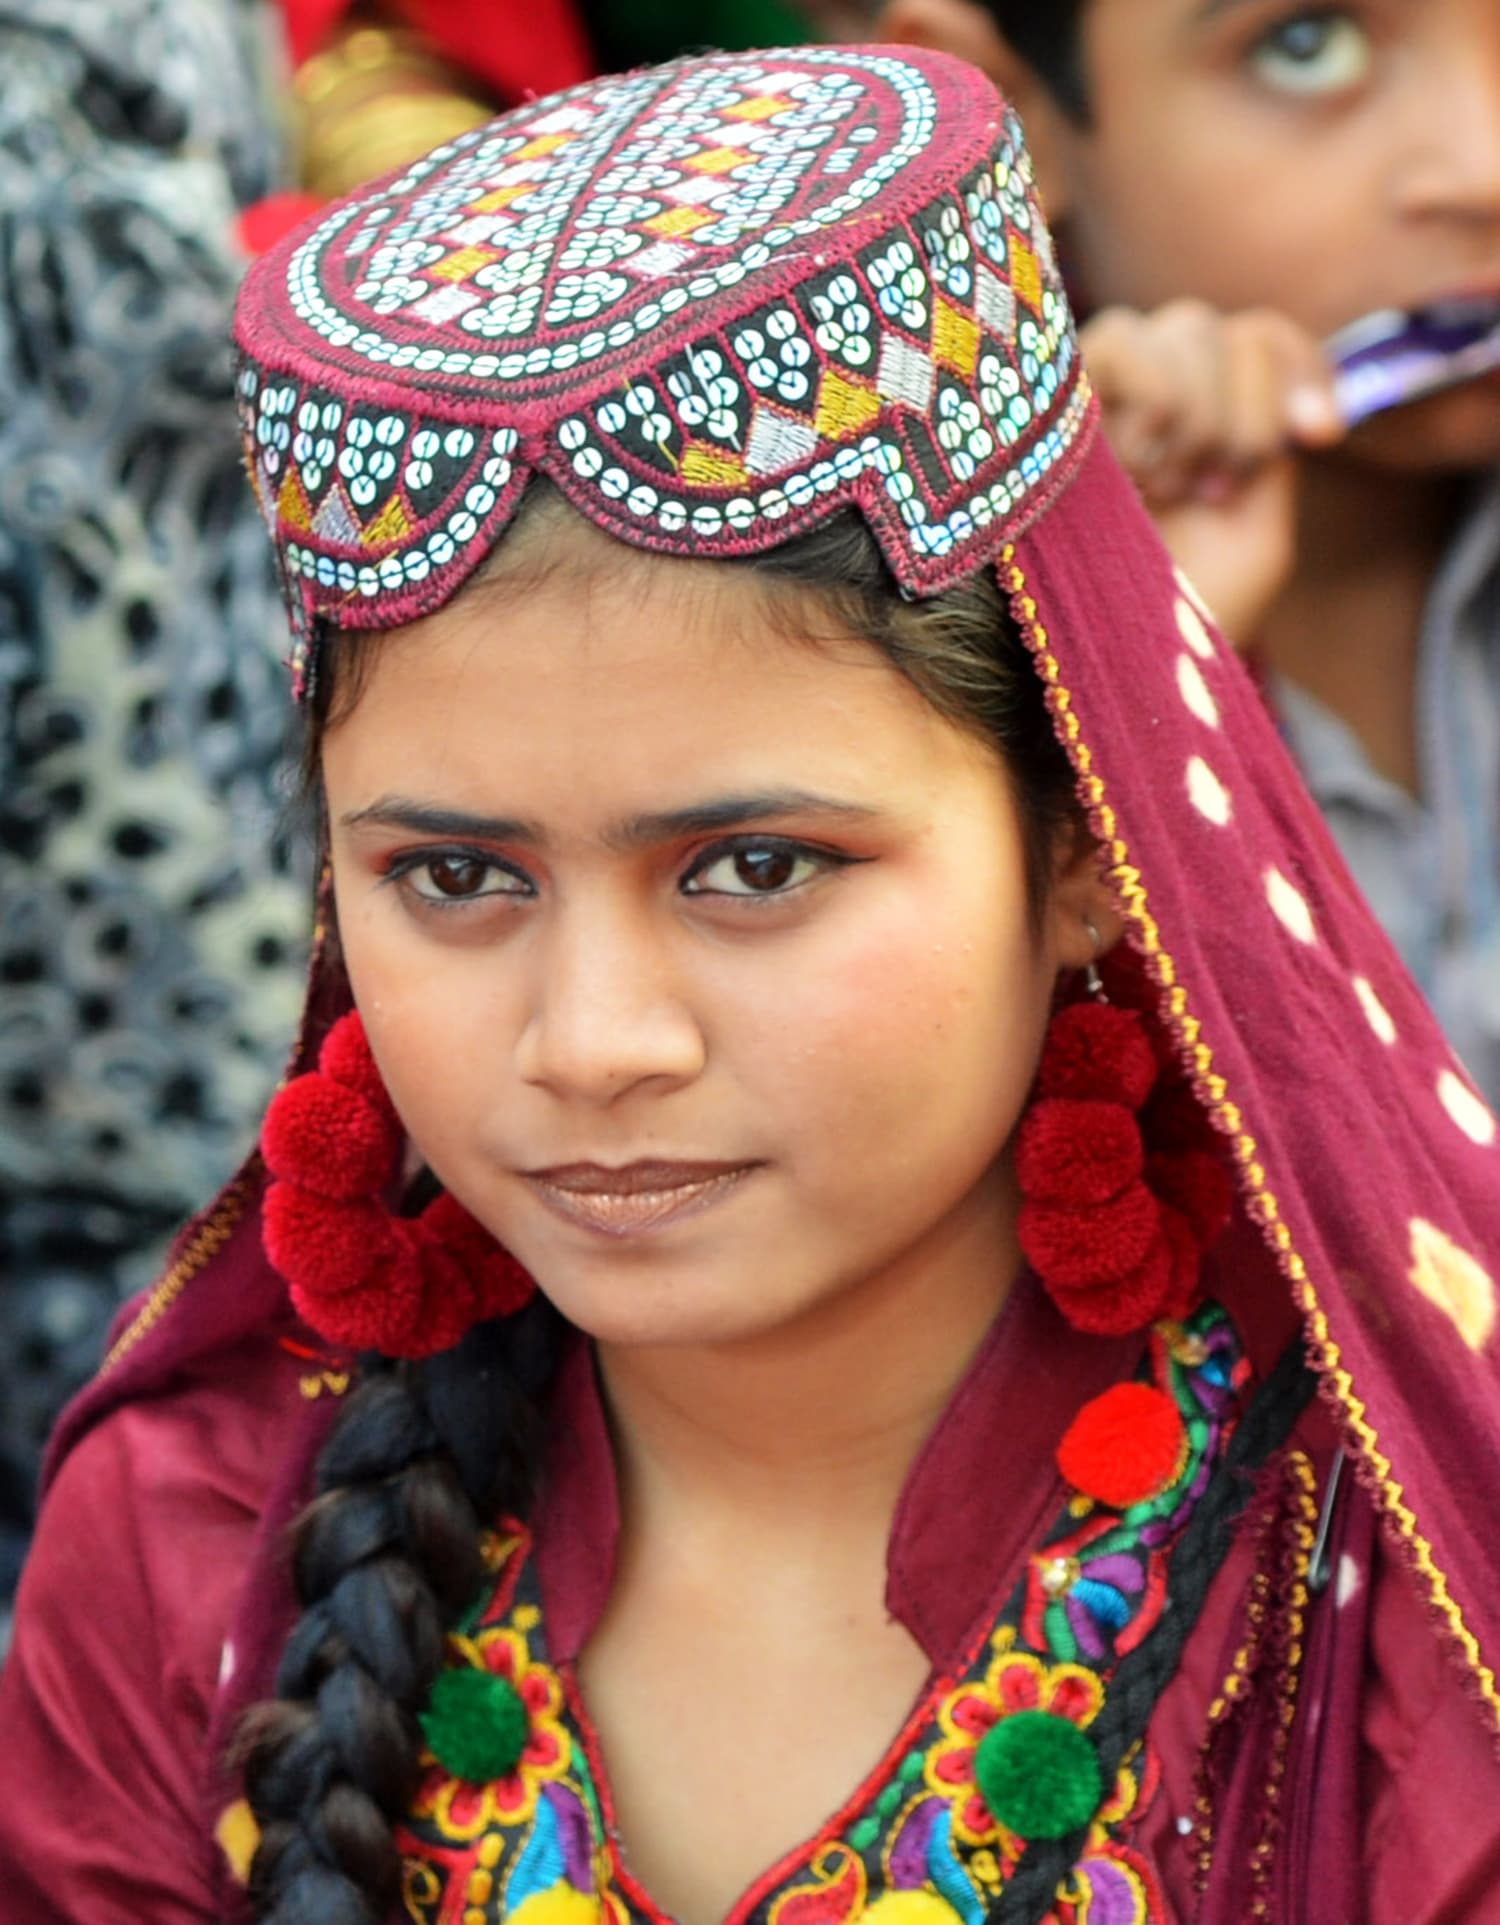 A young Sindhi woman looks on as she attends a Sindh Cultural festival in Karachi.— AFP